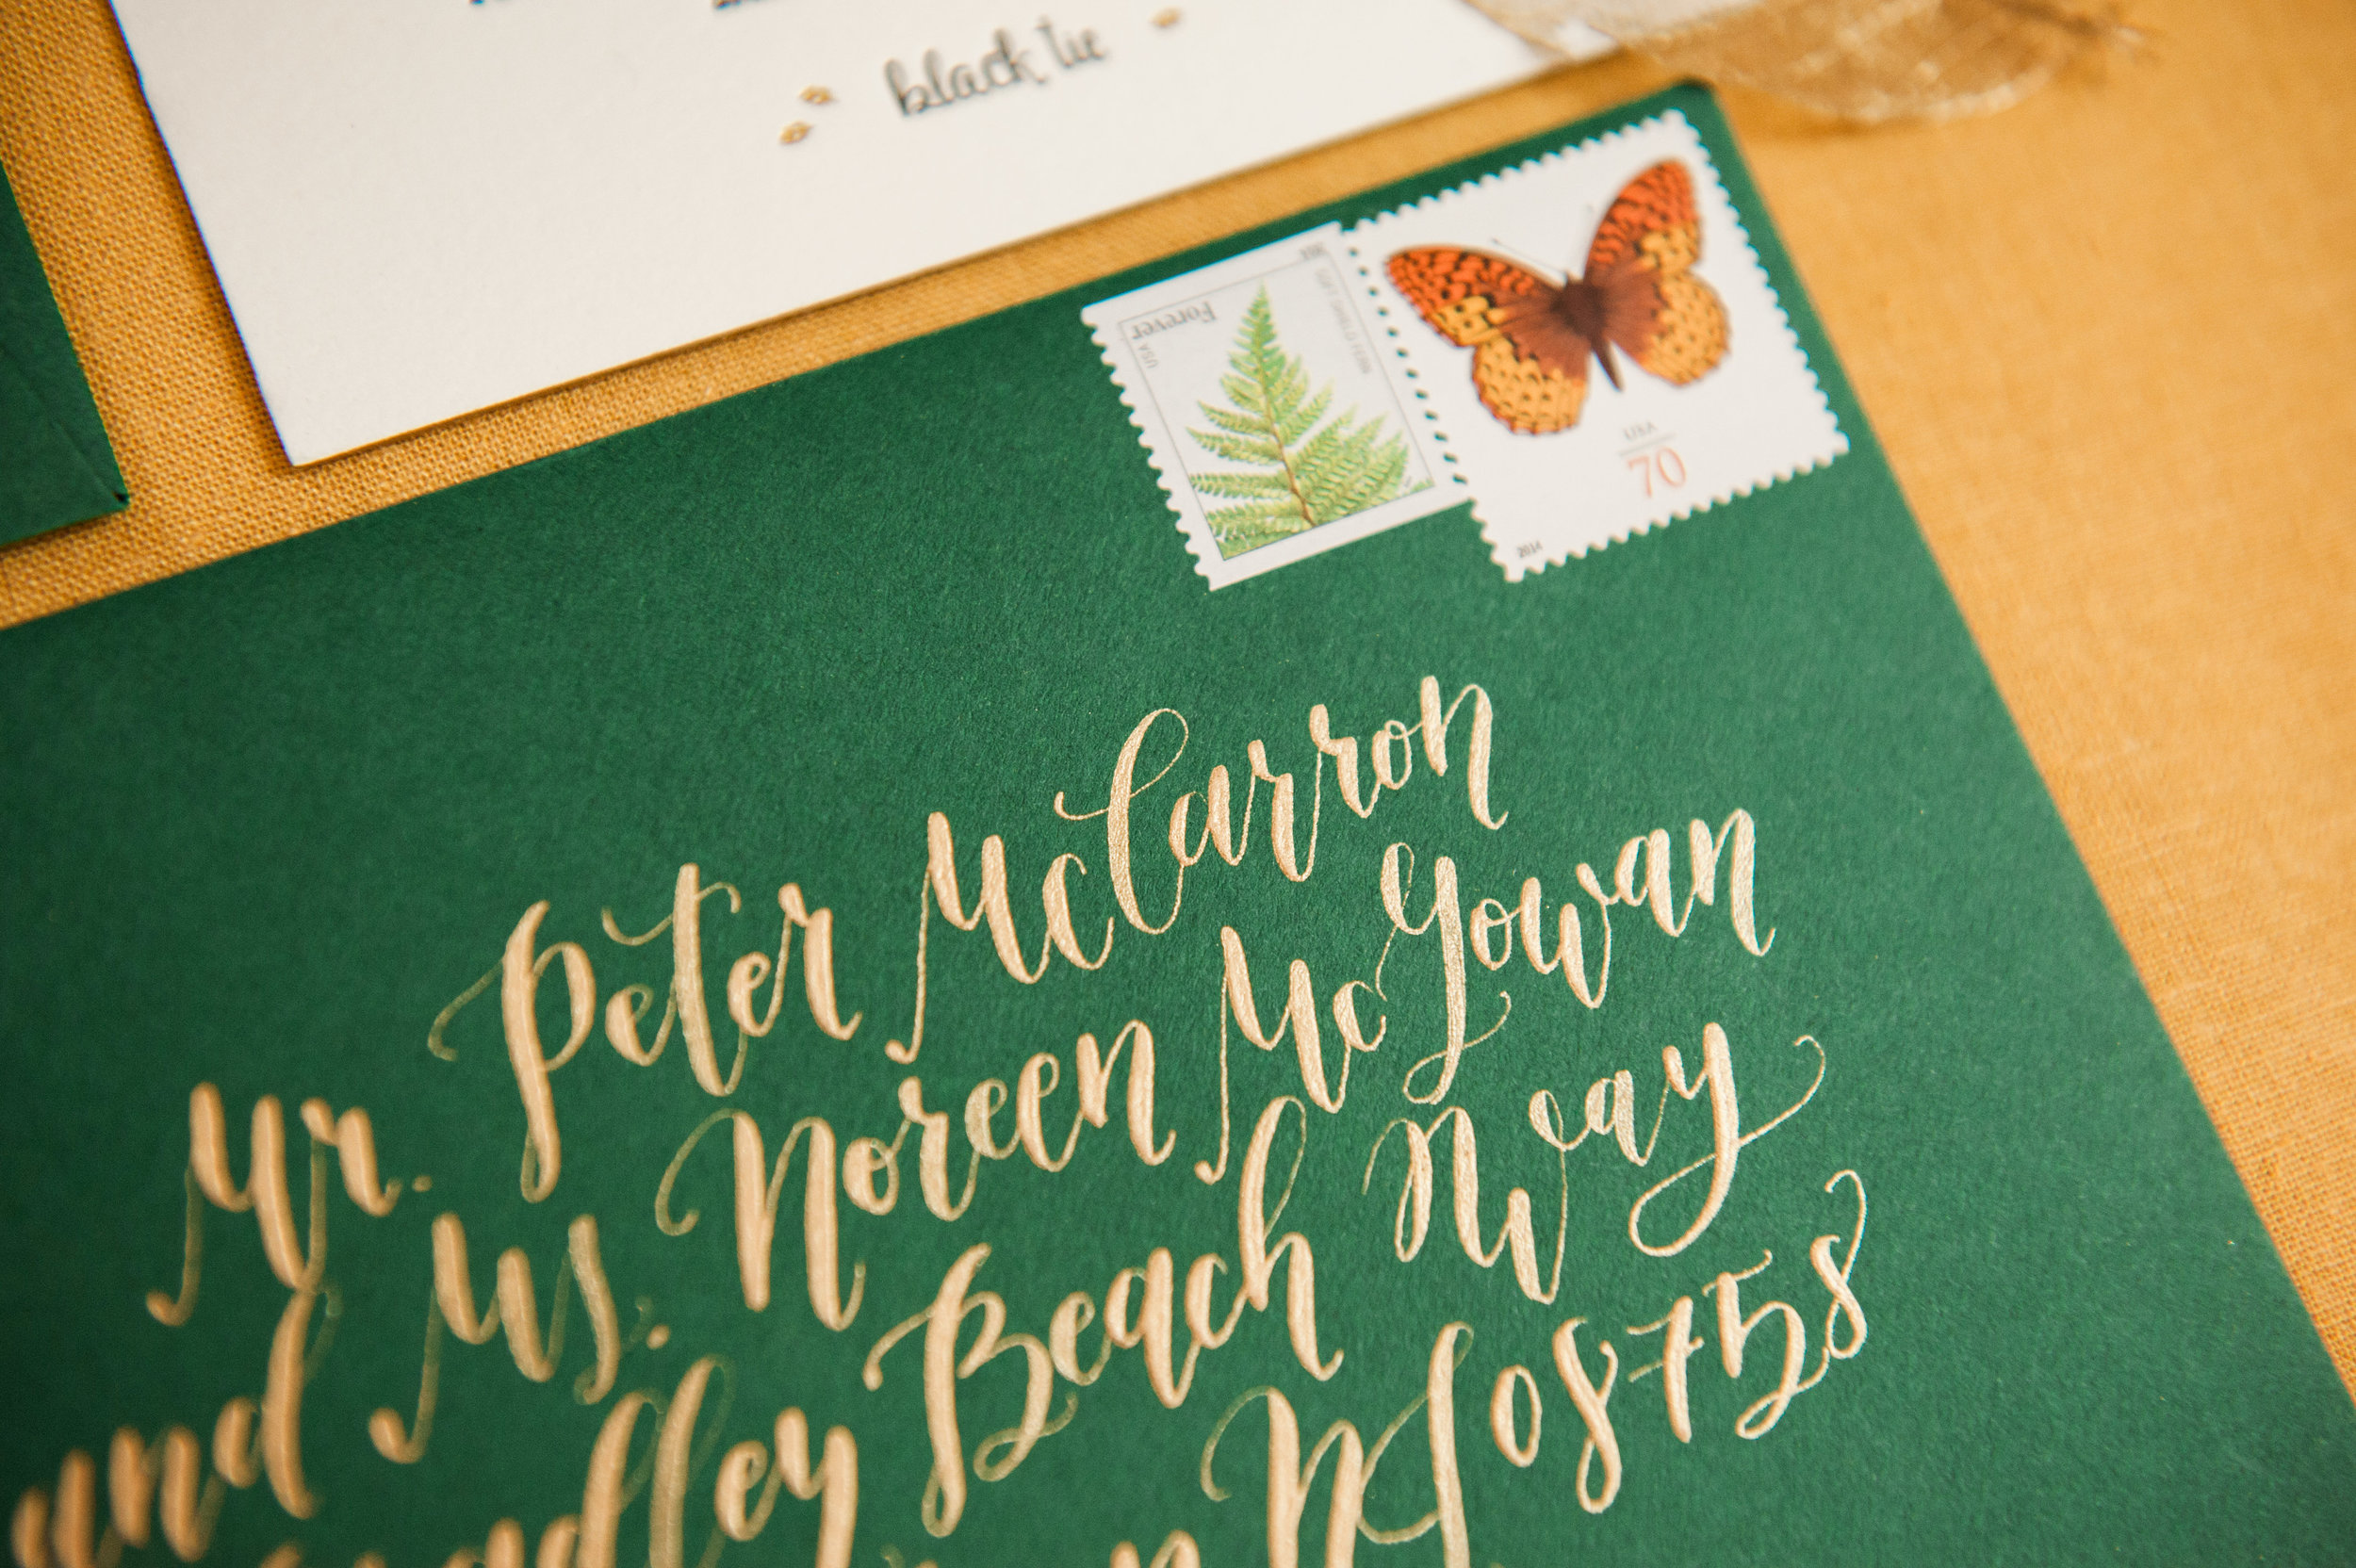 Kim at Manayunk Calligraphy added the perfect finishing touch of gold on the forest green envelope.